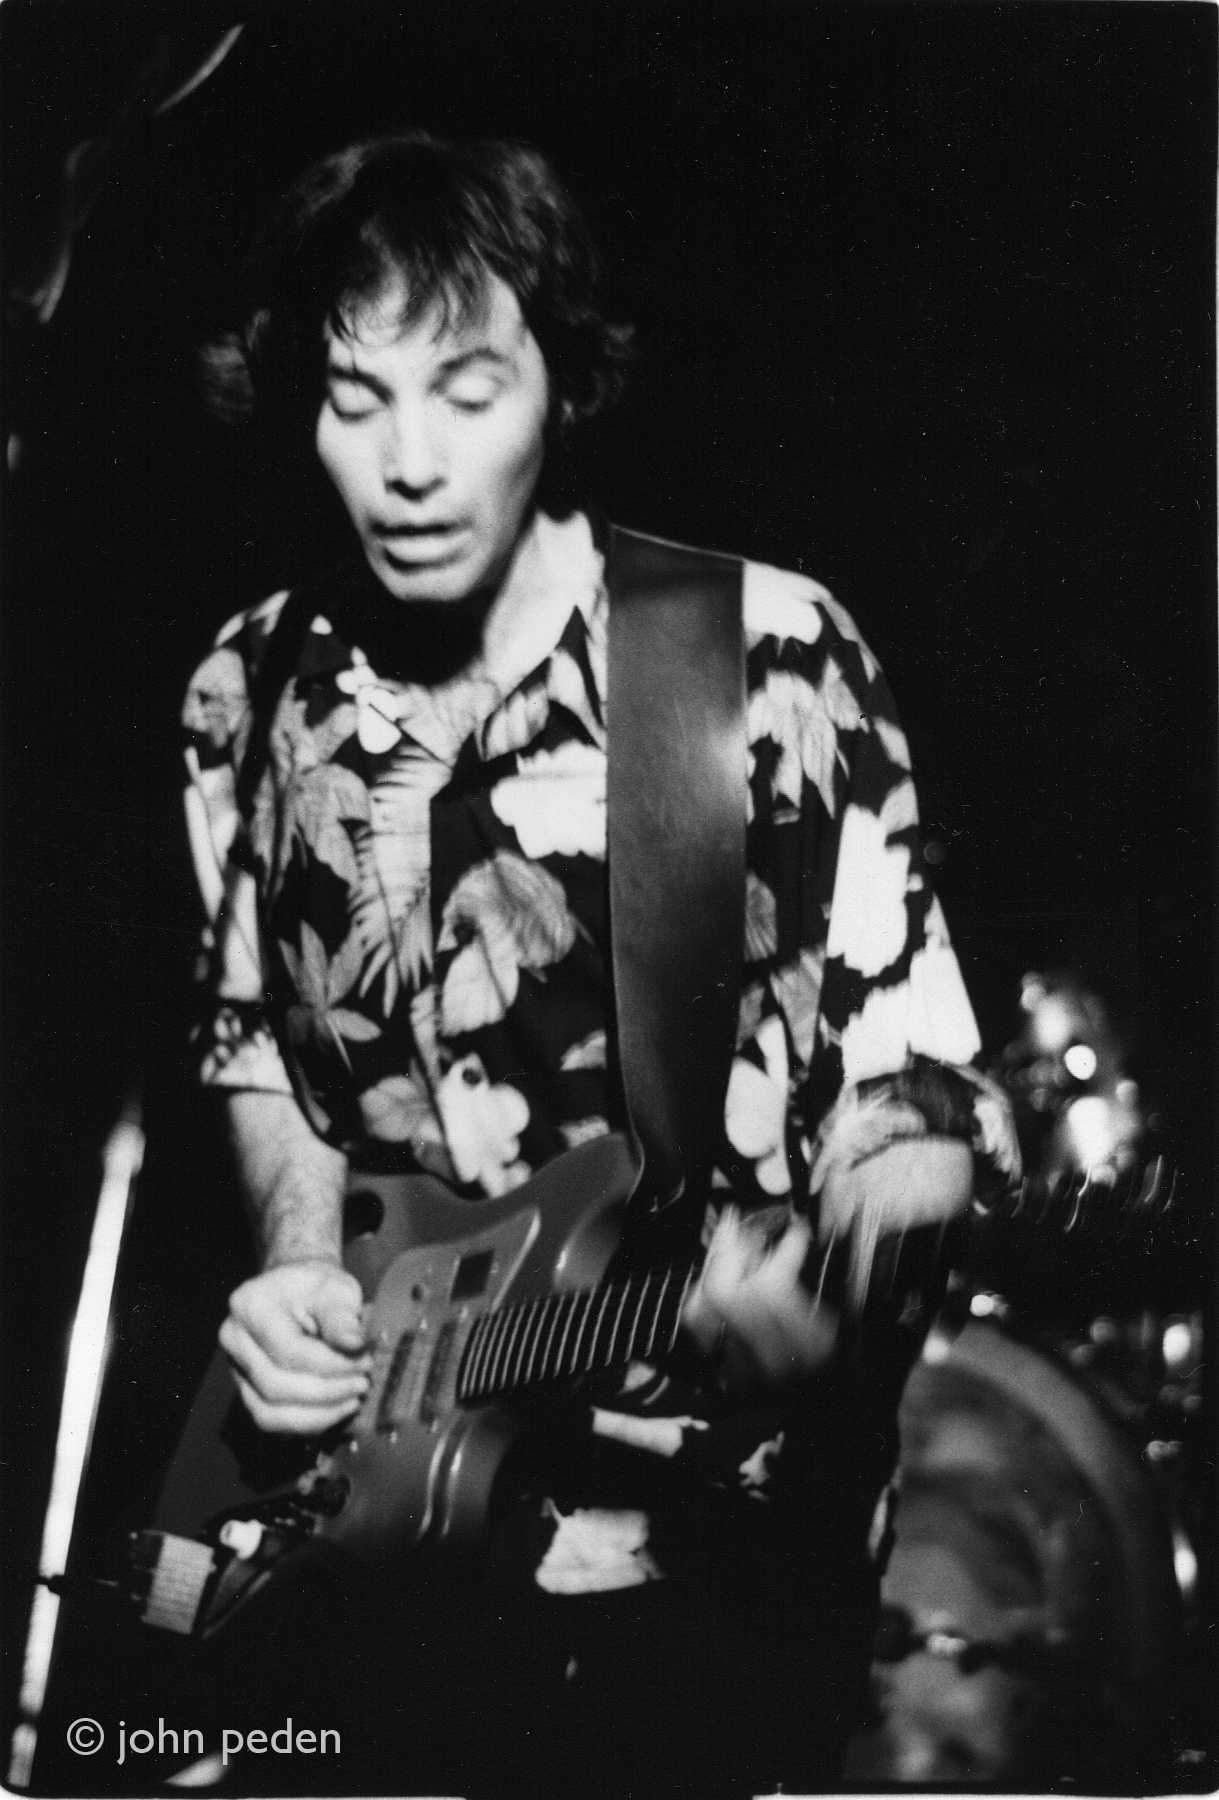 Ry Cooder at the Ritz early 80s